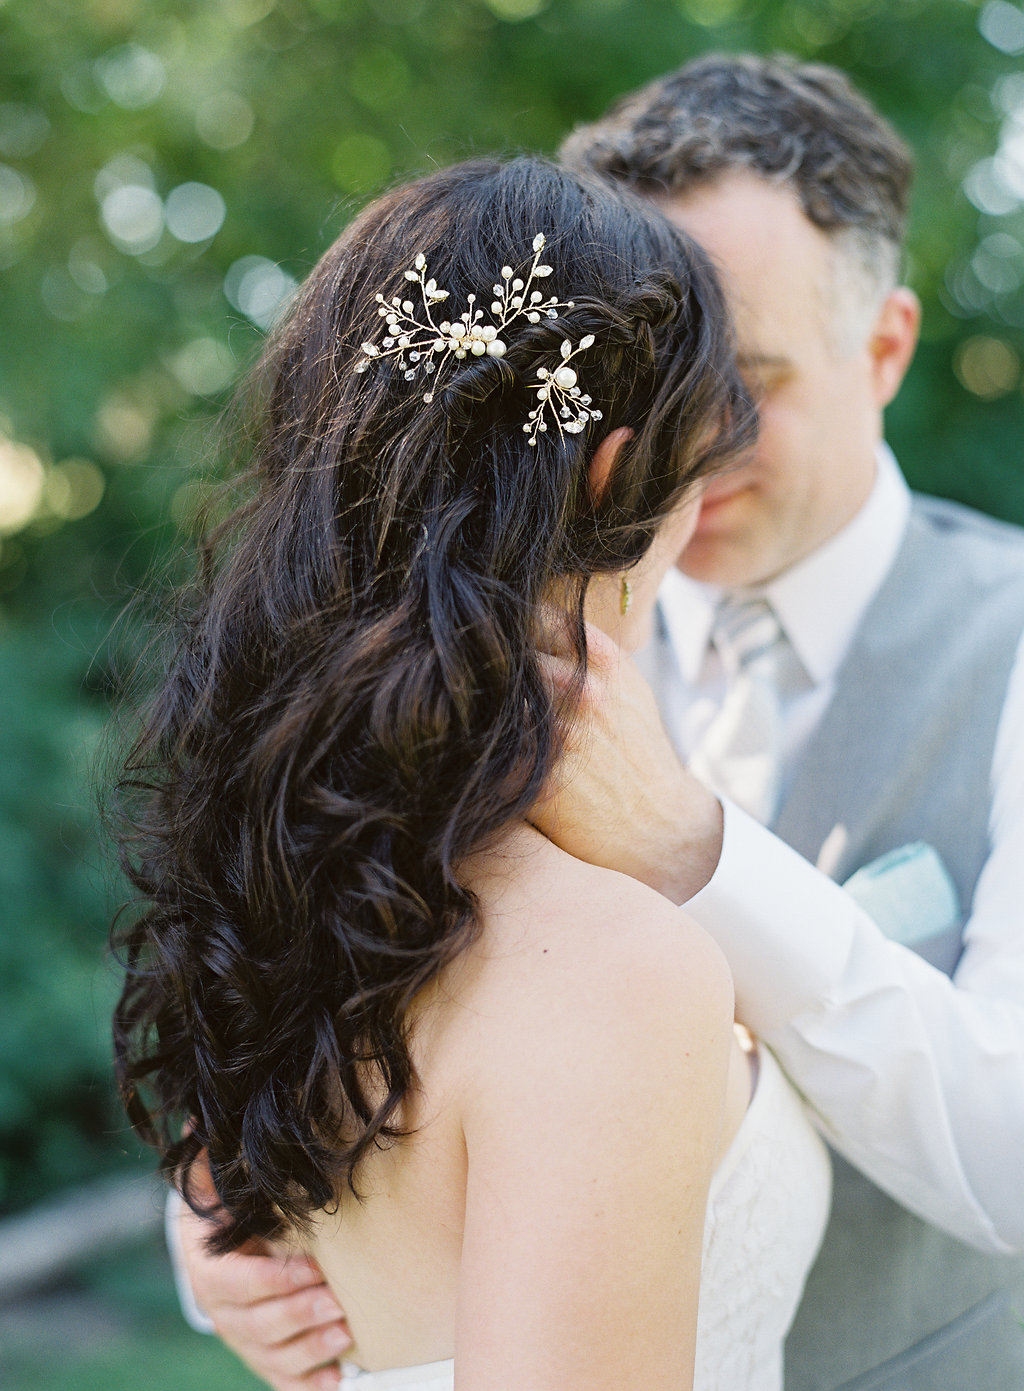 Meghan Mehan Photography - California Wedding Photography - Sacramento Wedding 008.jpg